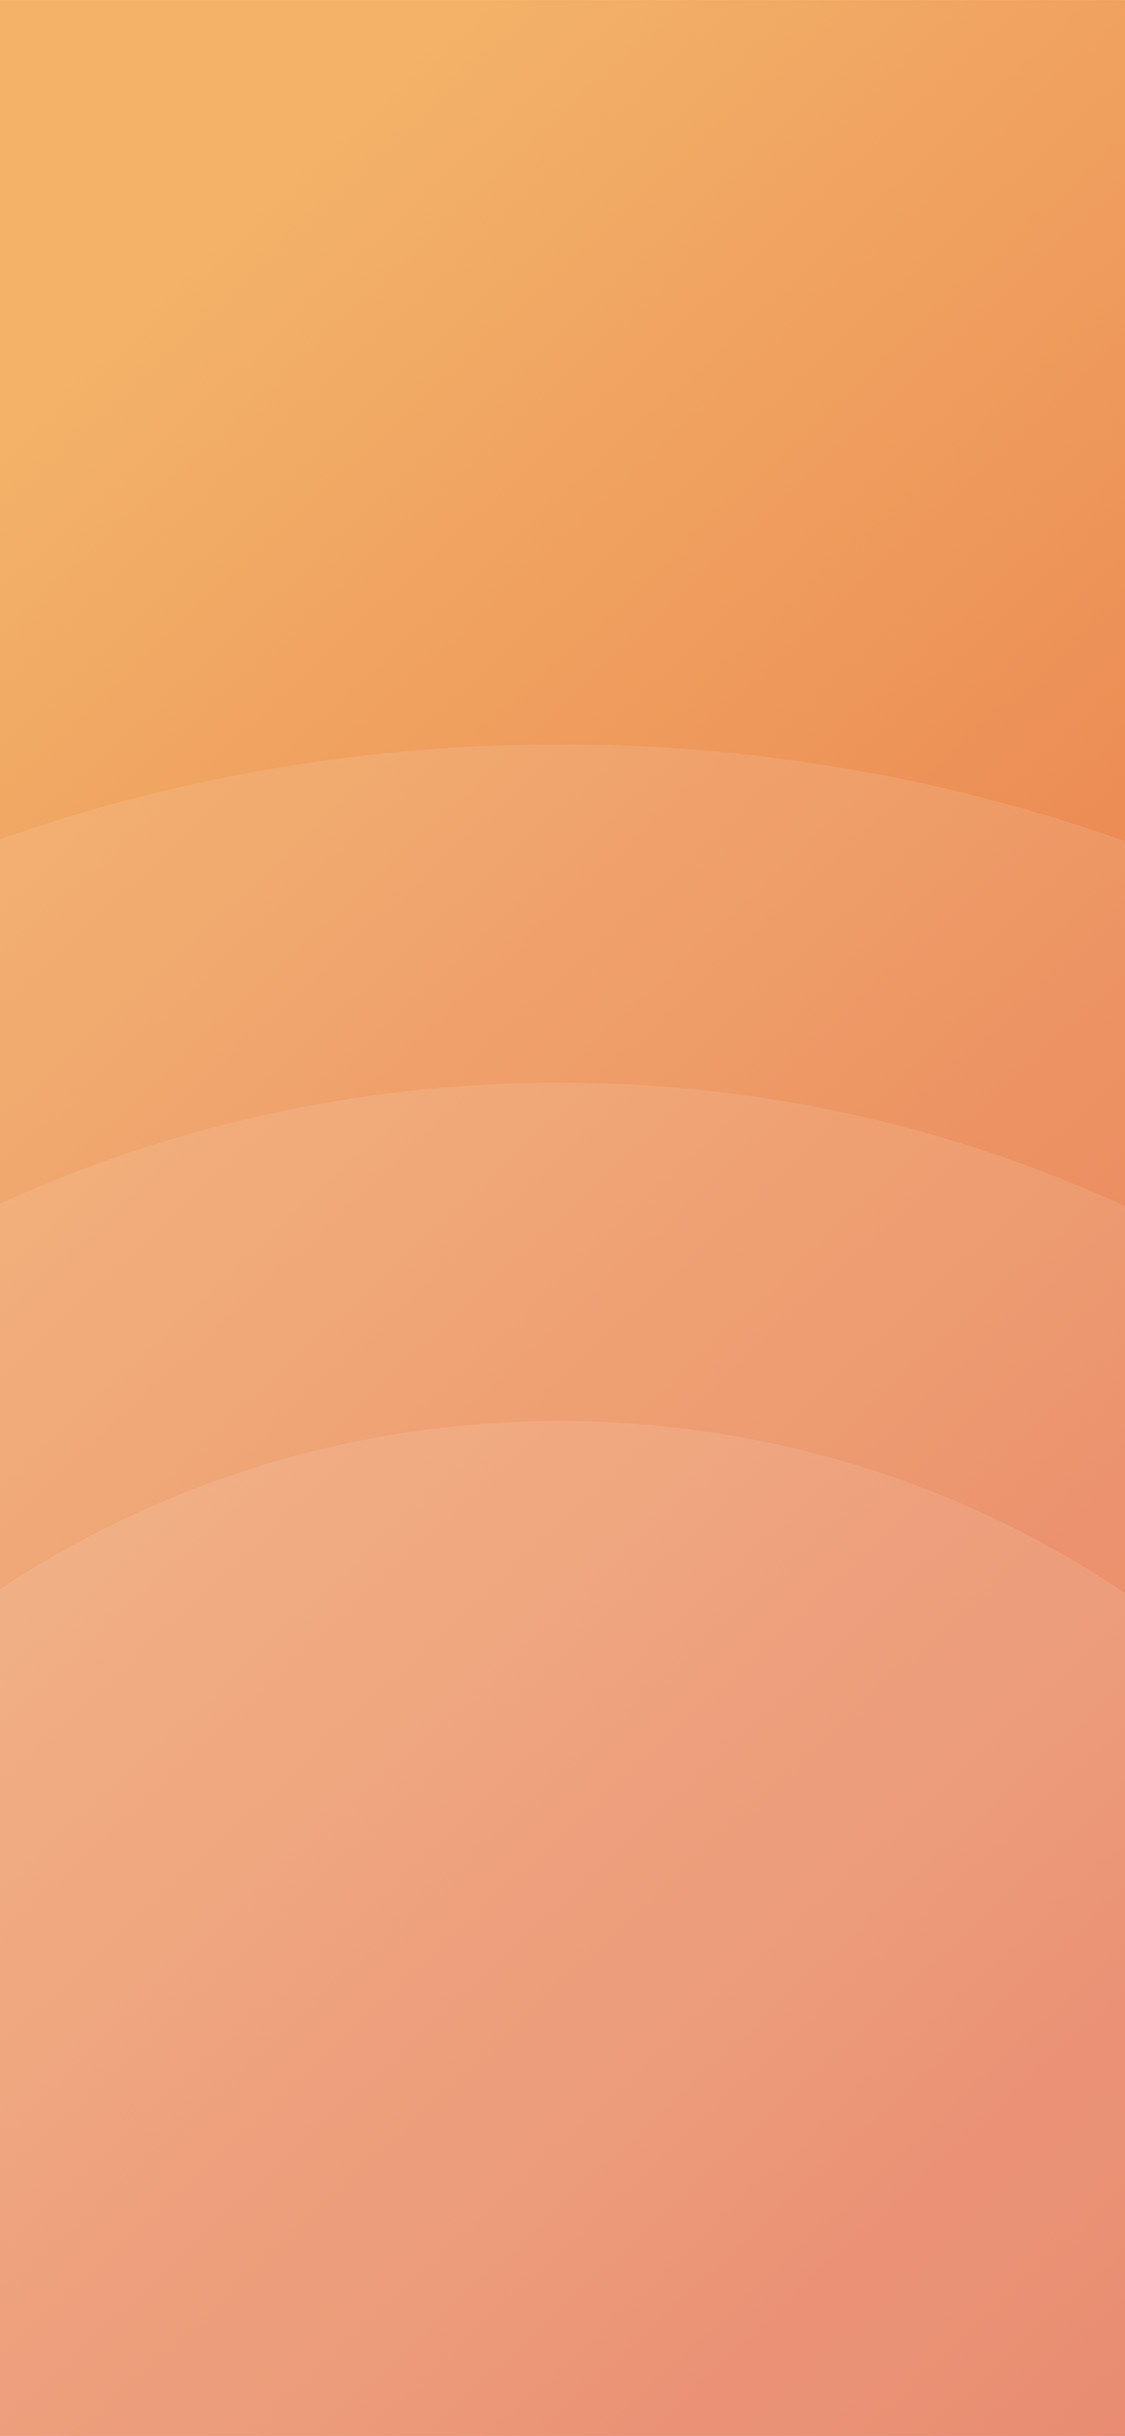 iPhonexpapers.com-Apple-iPhone-wallpaper-vy77-circle-orange-simple-minimal-pattern-background